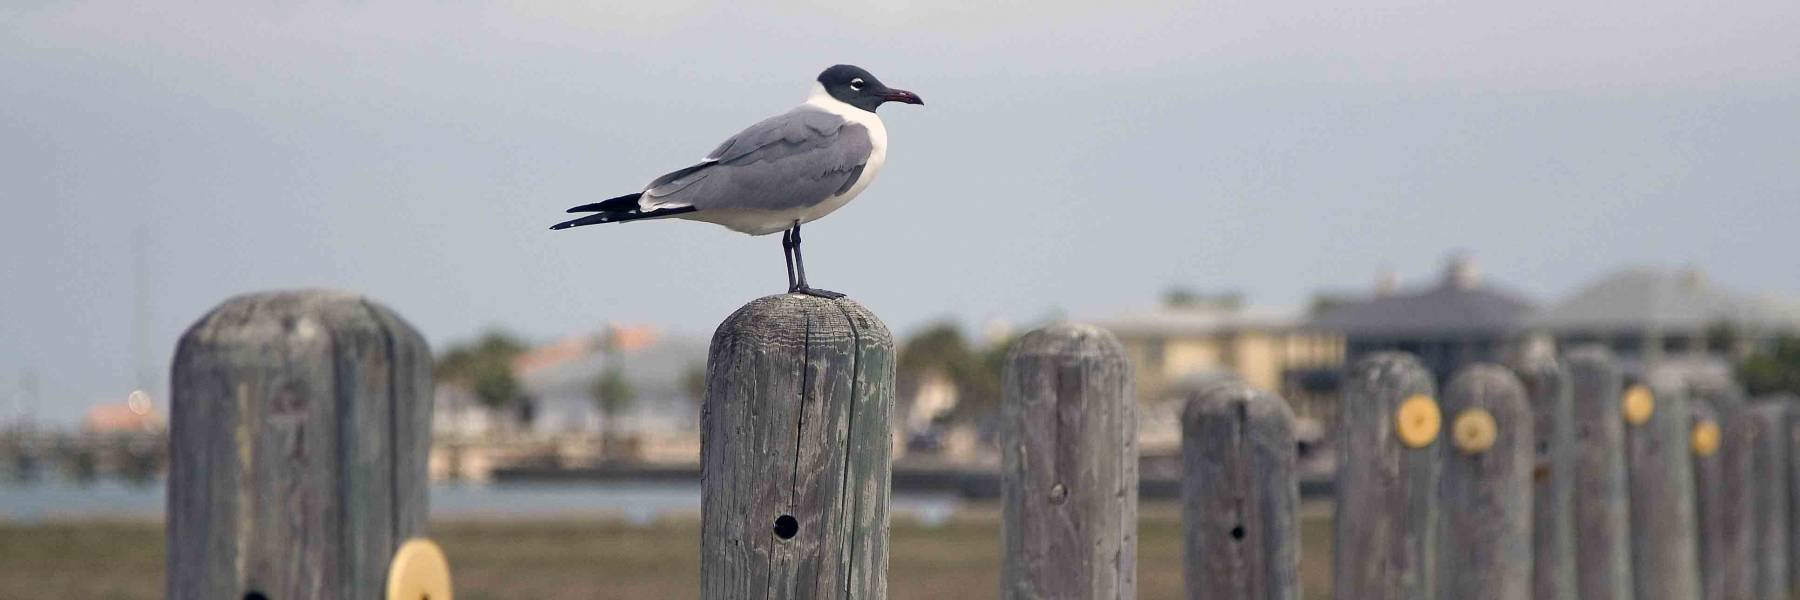 Bird on a post in Port Aransas Texas